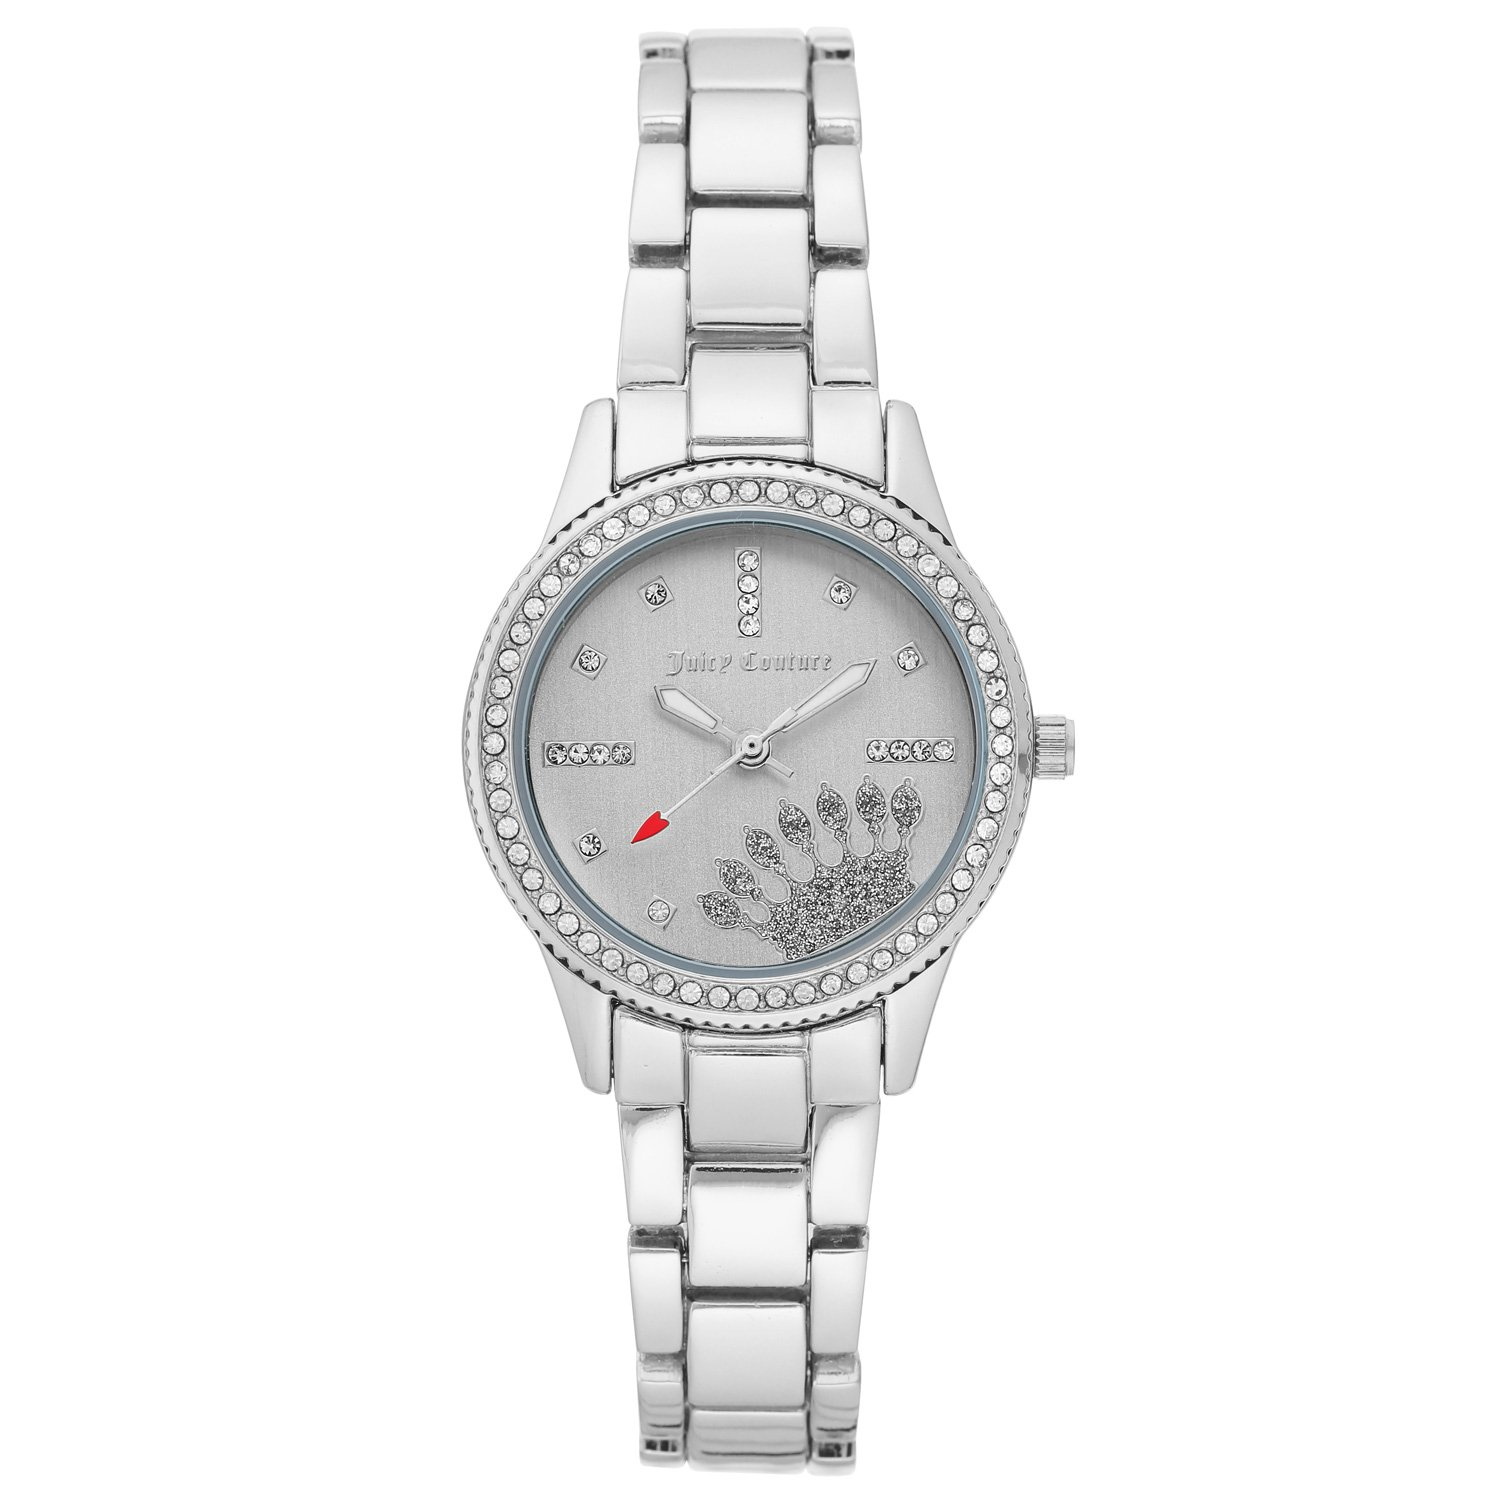 Juicy Couture Women's Watch Silver JC/1110SVSV